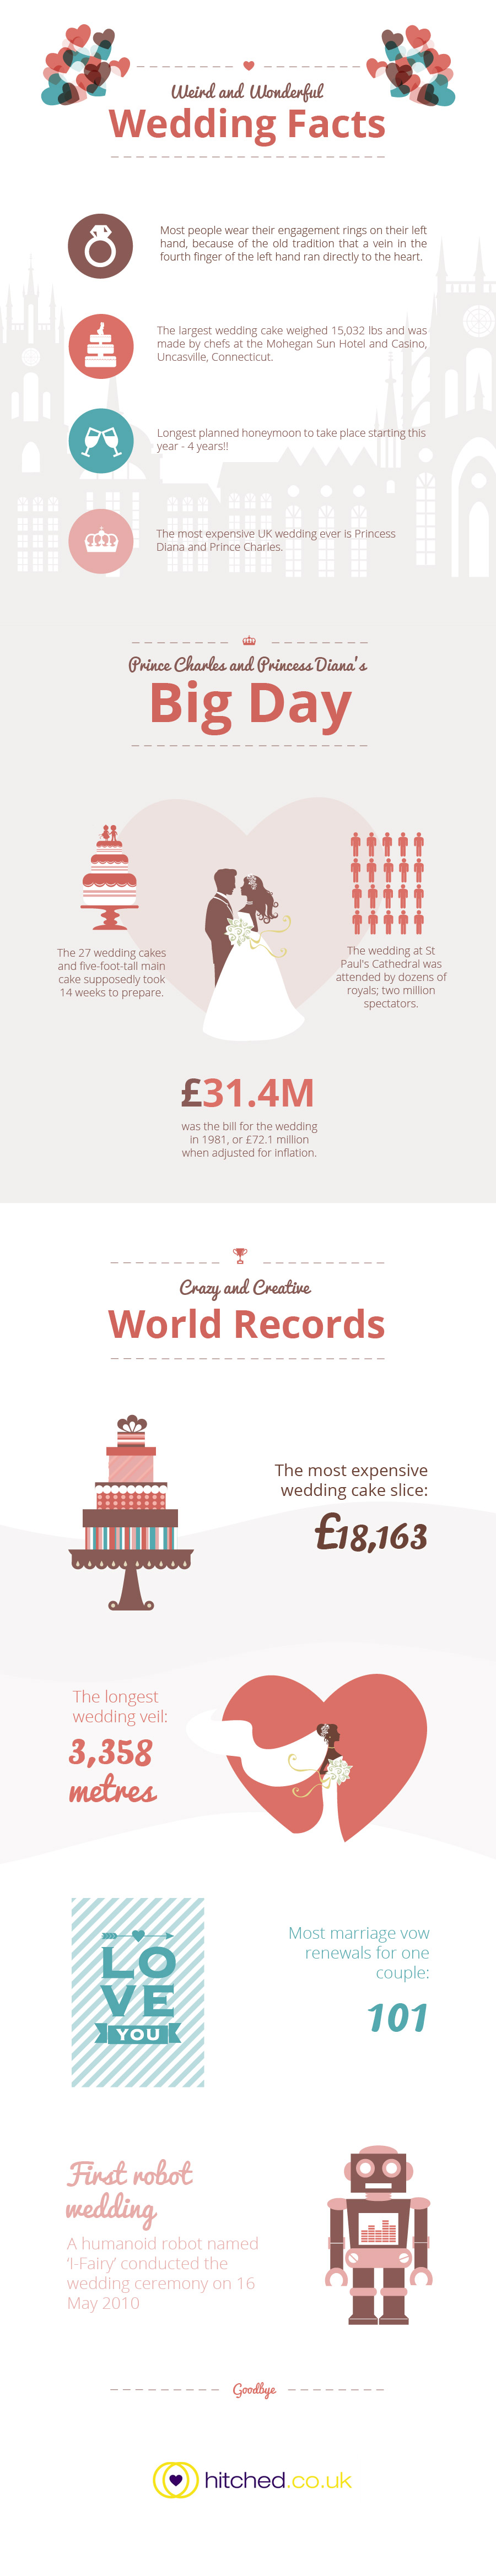 Quirky Wedding Facts-Infographic